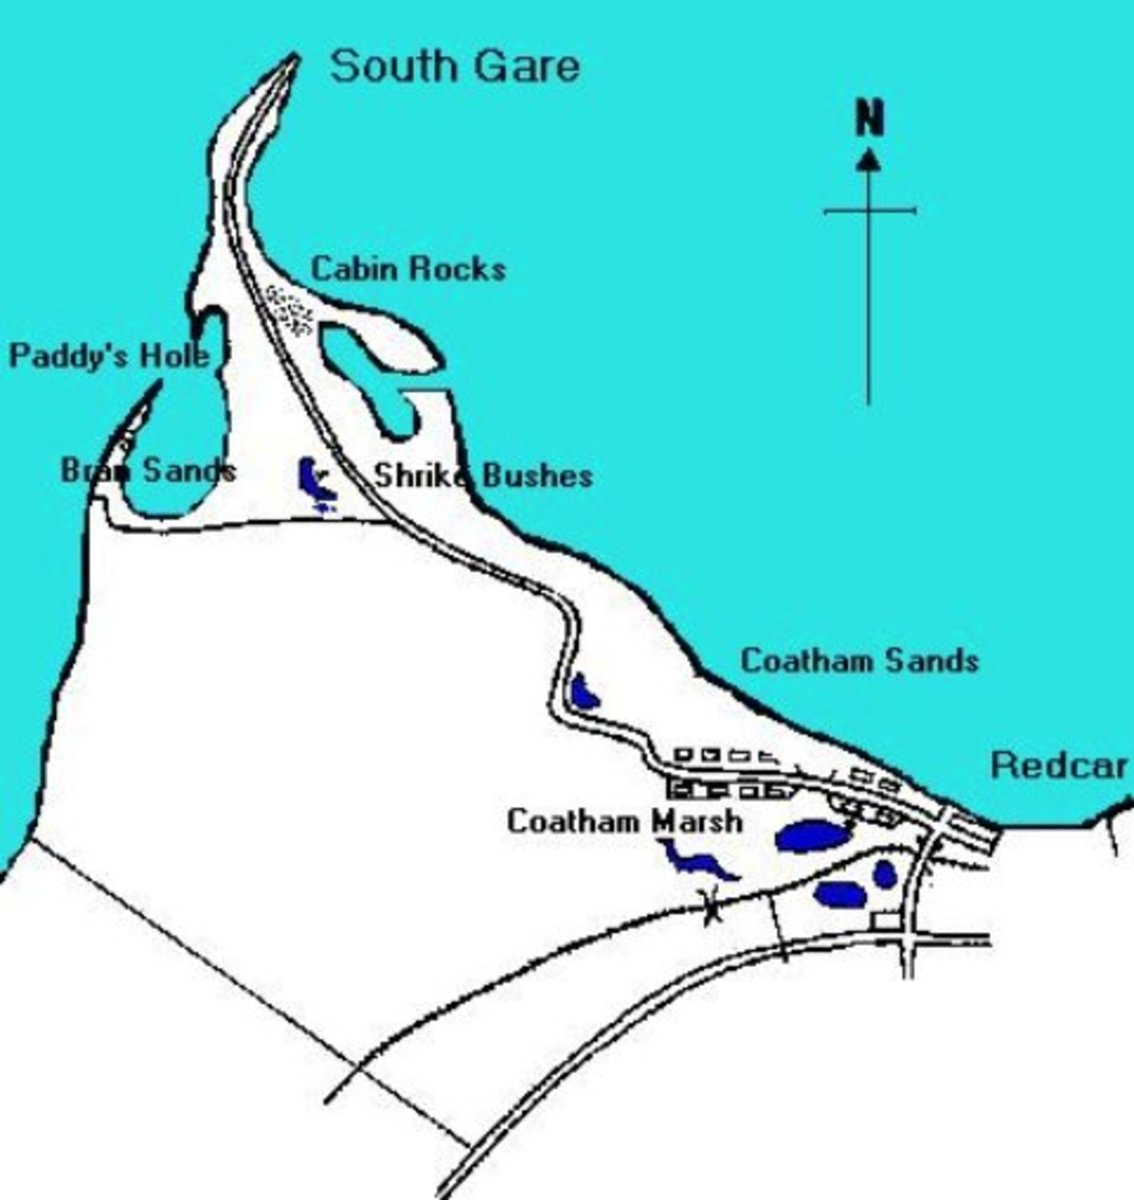 South Gare, north-west of Coatham. Not marked on the map is the ore terminal and the now de-commissioned Warrenby works west of Coatham, close to where the road bends sharply north-eastward